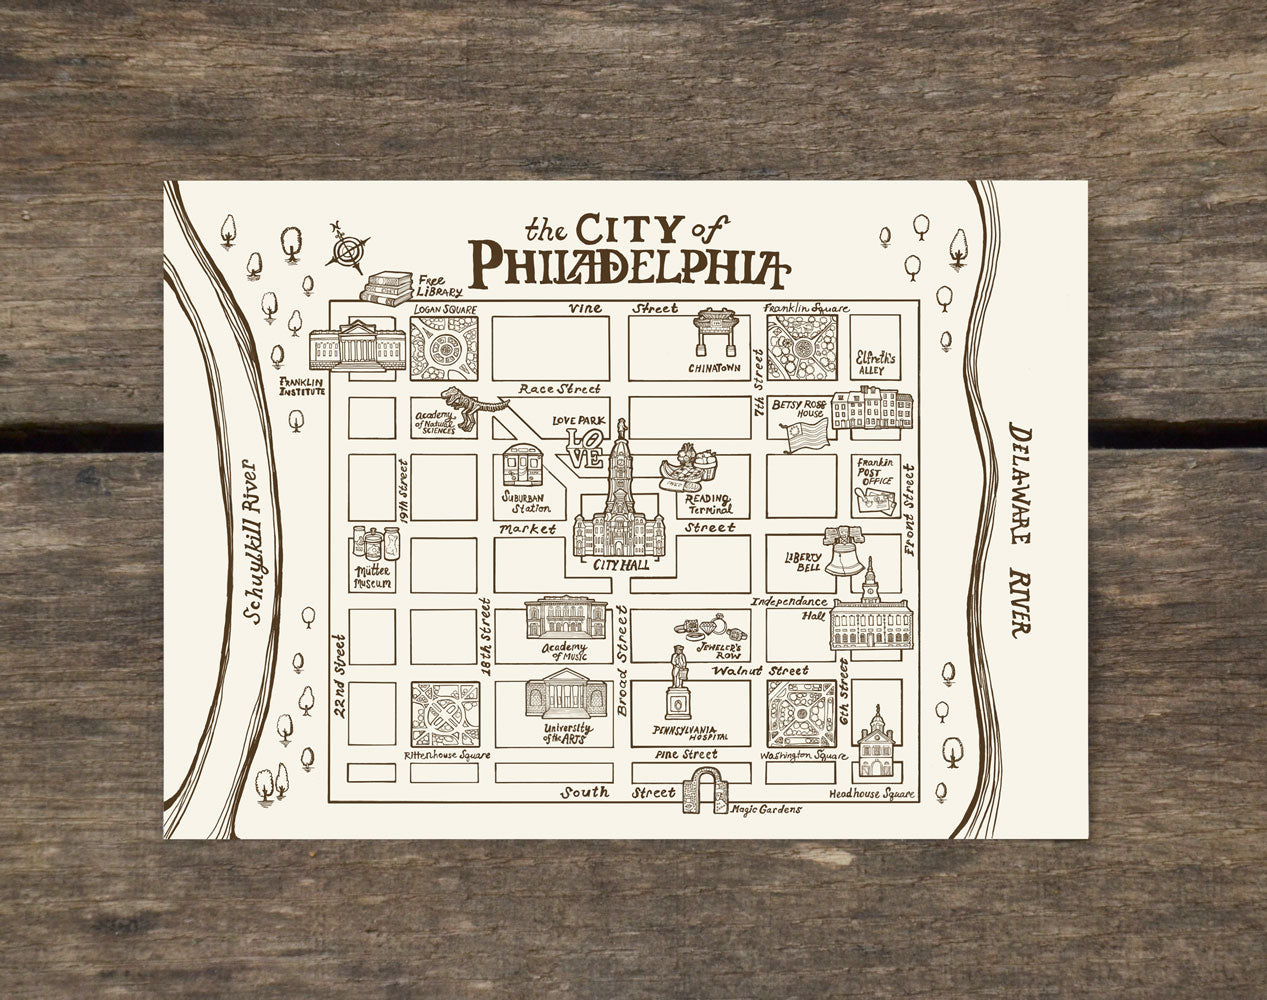 Philadelphia Vintage Map Postcard - Center City Neighborhood ... on map of delaware river 1776, map of american colonies 1776, map of virginia 1776, map of bucks county 1776, map of pennsylvania in 1700s, map of manhattan 1776, map of united states 1776, map of long island 1776, map of colonies in 1776, map of texas 1776, map of the mid atlantic colonies, map of america in 1776, map of dorchester heights 1776, map of annapolis 1776, map of quebec city 1776, map of easton 1776, map of california 1776, map of pennsylvania in 1776, map of trenton 1776, map of alaska 1776,